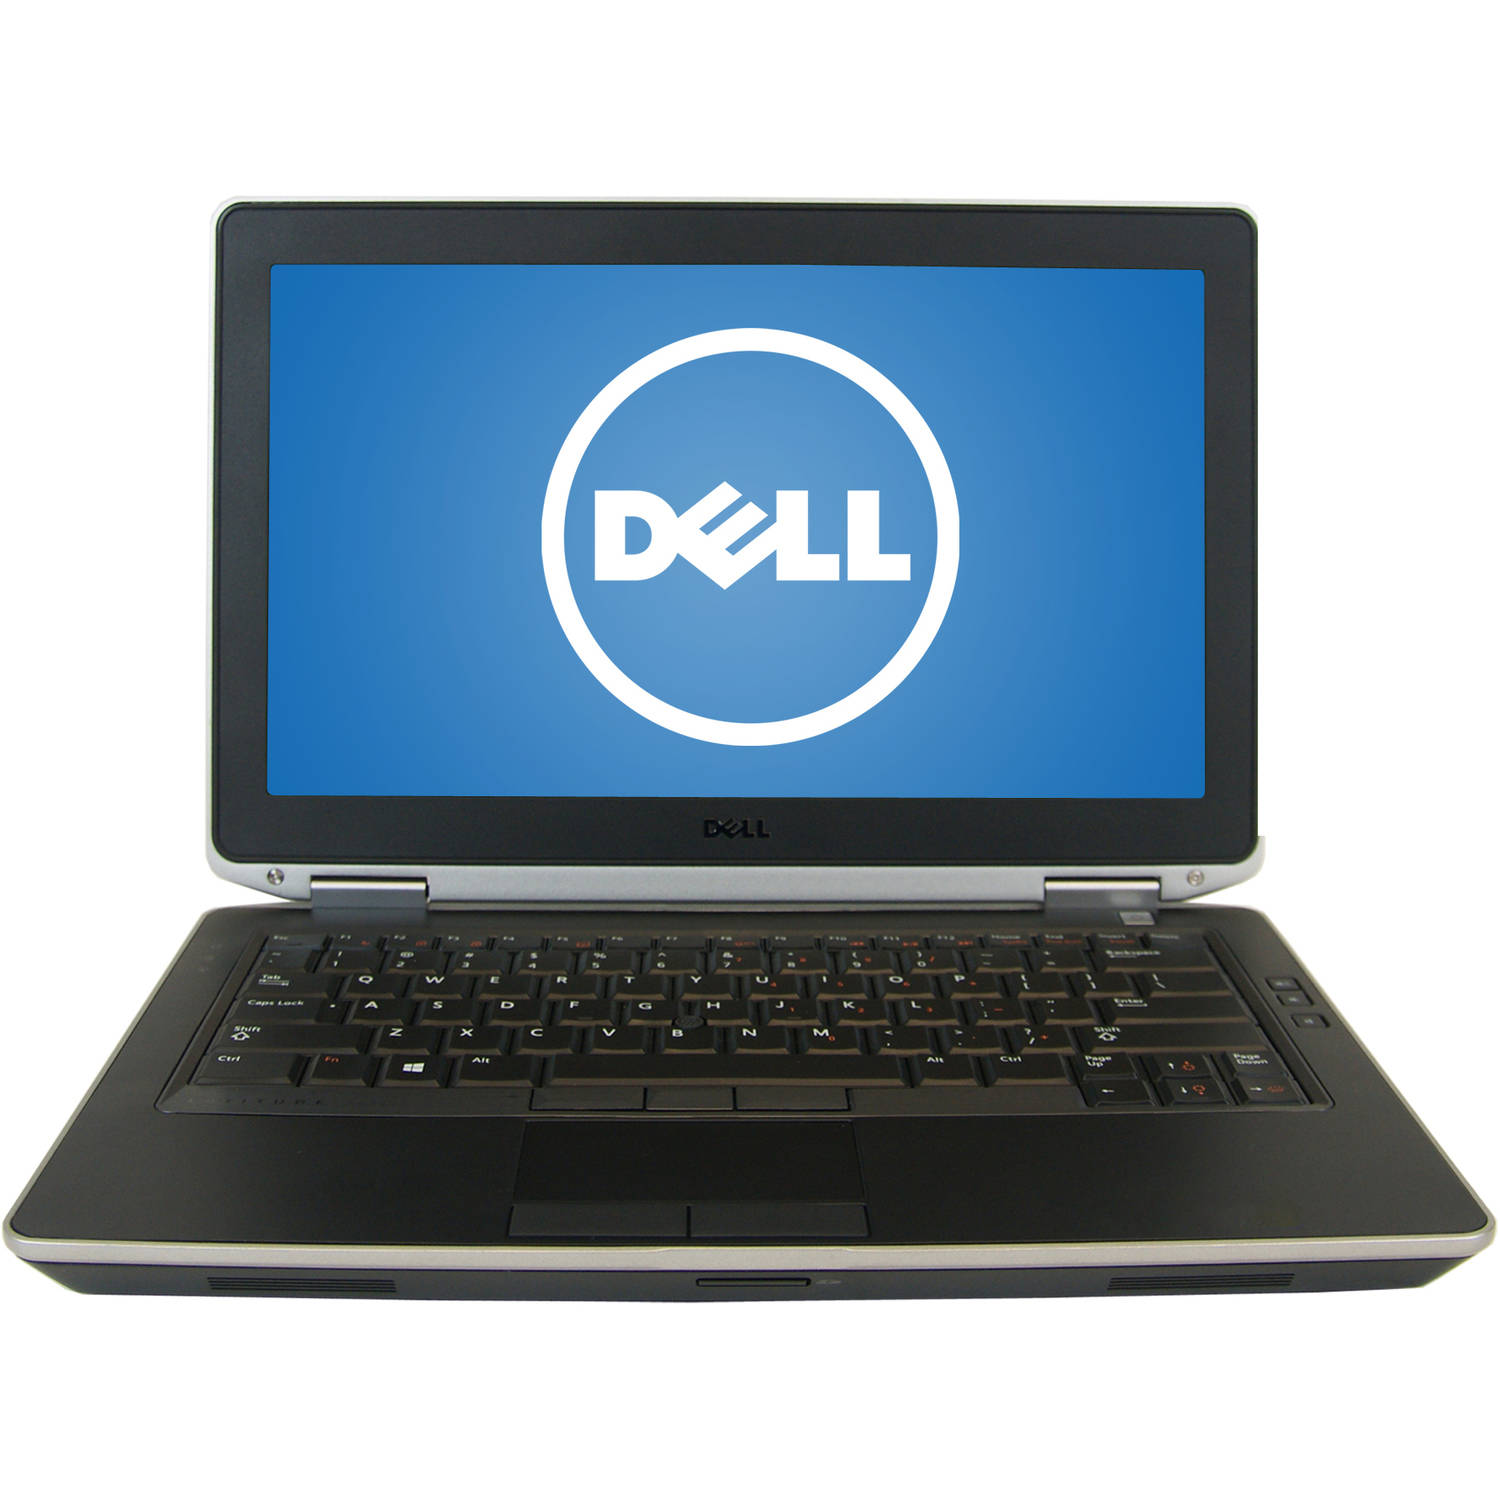 "Refurbished Dell 13.3"" Latitude E6330 Laptop PC with Intel Core i5-3320M Processor, 8GB Memory, 256GB Solid State Drive and Windows 10 Pro"